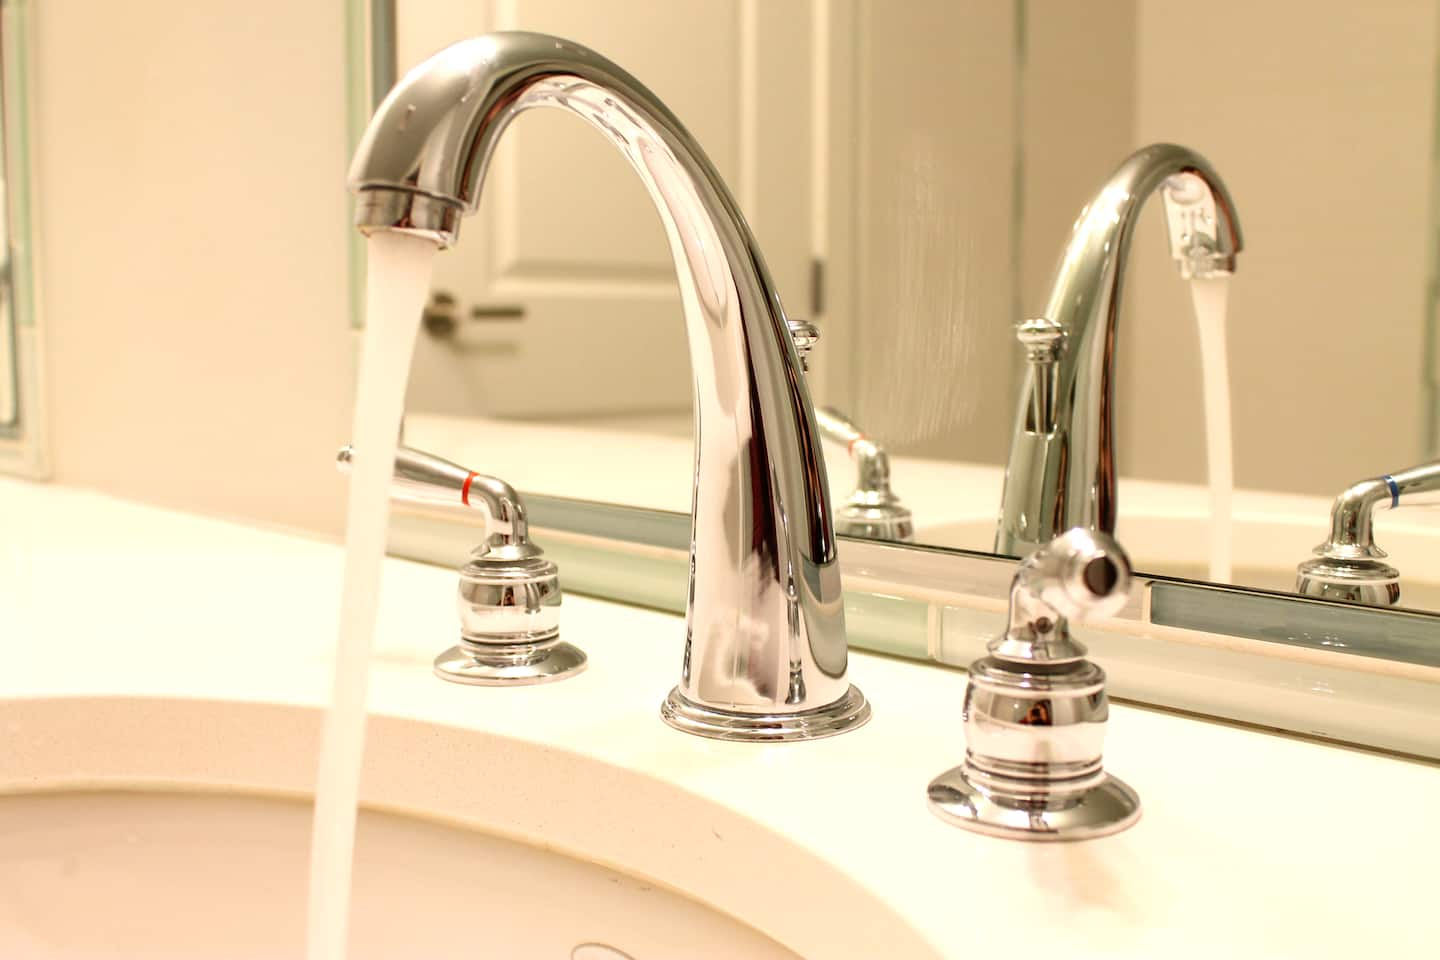 How to Change a Sink Faucet Aerator Angies List